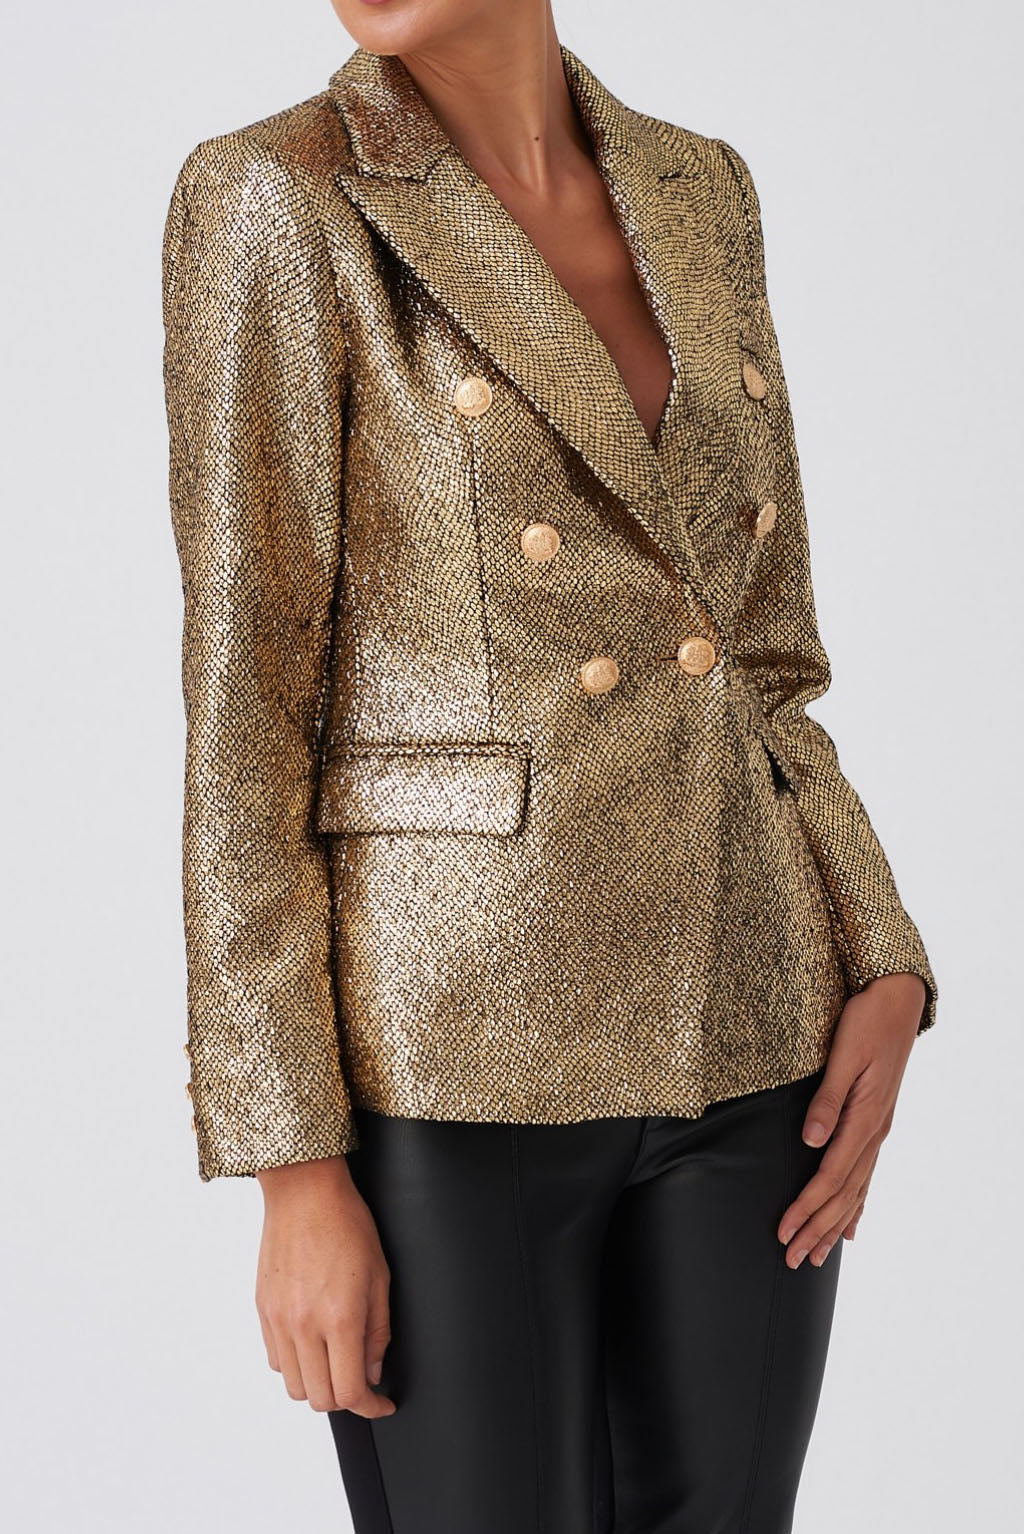 Sequined Double-Breasted Blazer - Gold